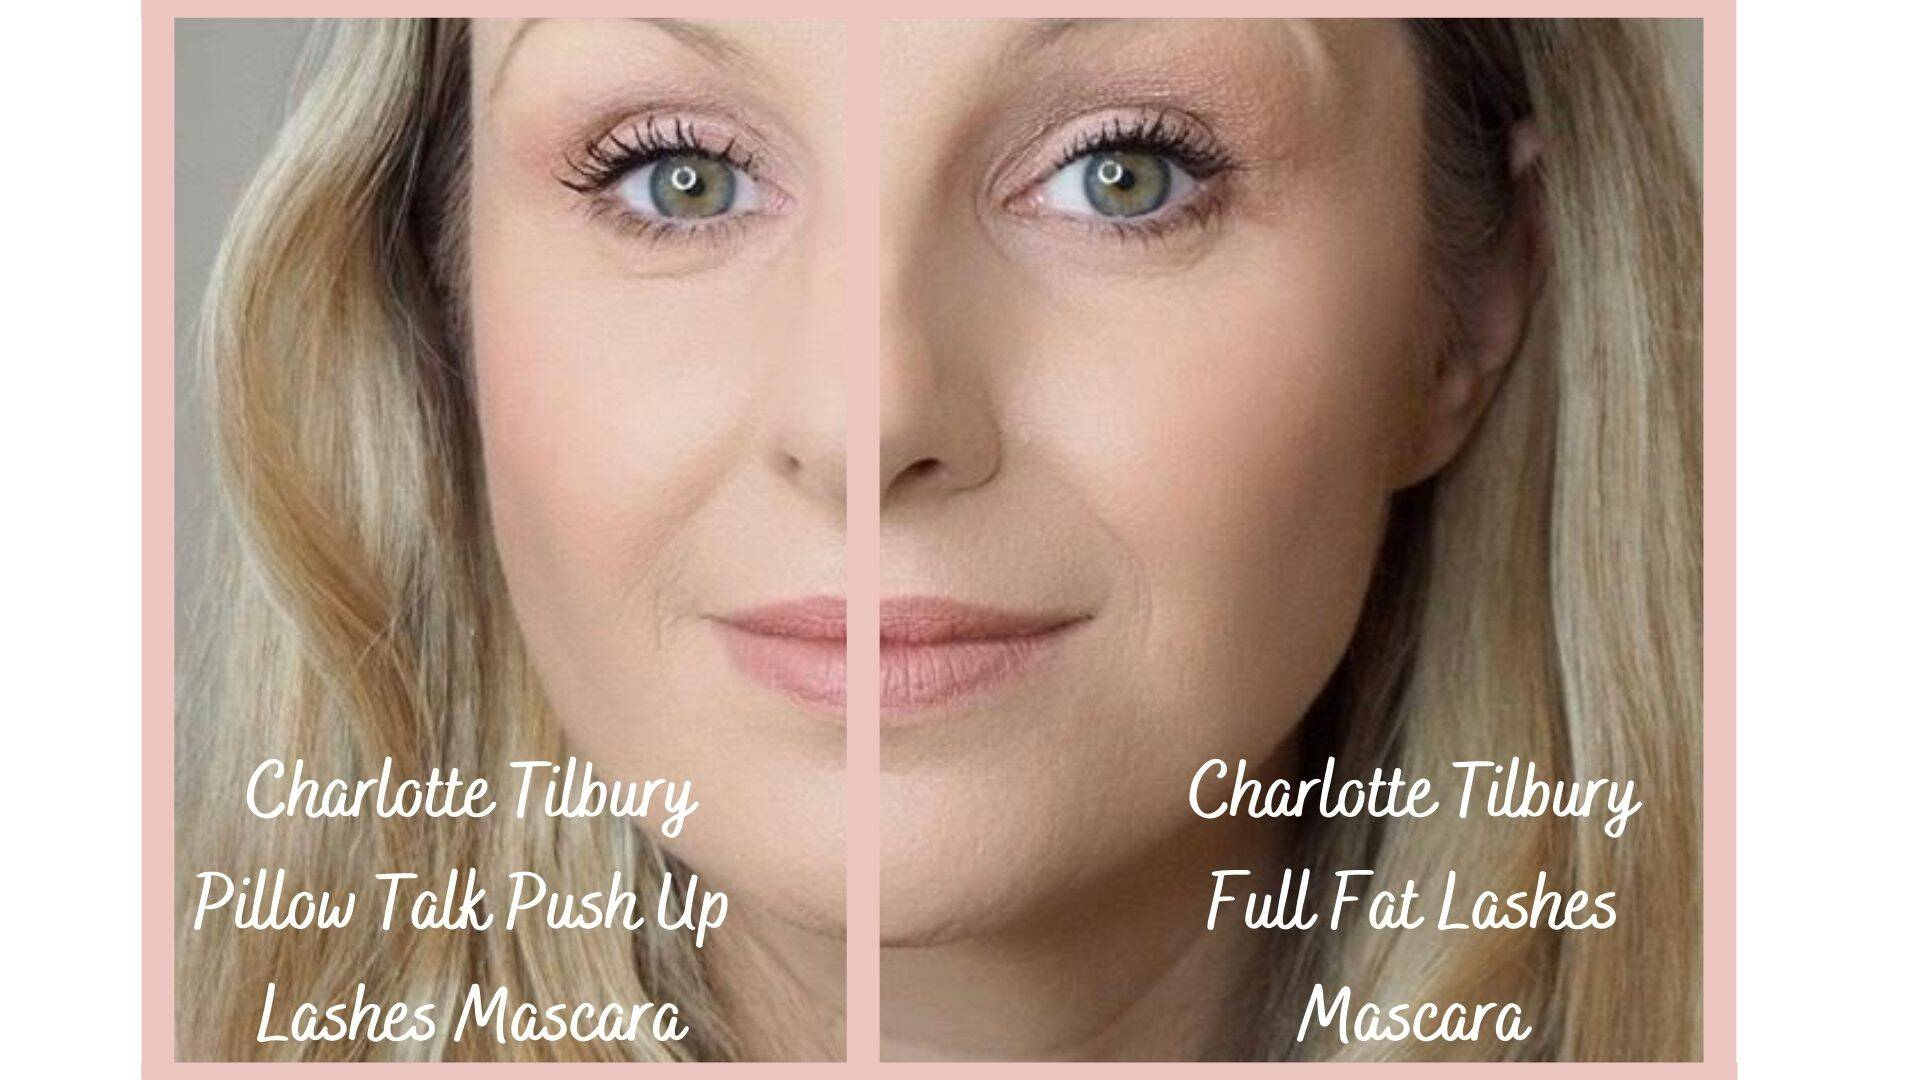 Charlotte Tilbury Pillow Talk Push Up Lashes Mascara vs Full Fat Lashes Mascara